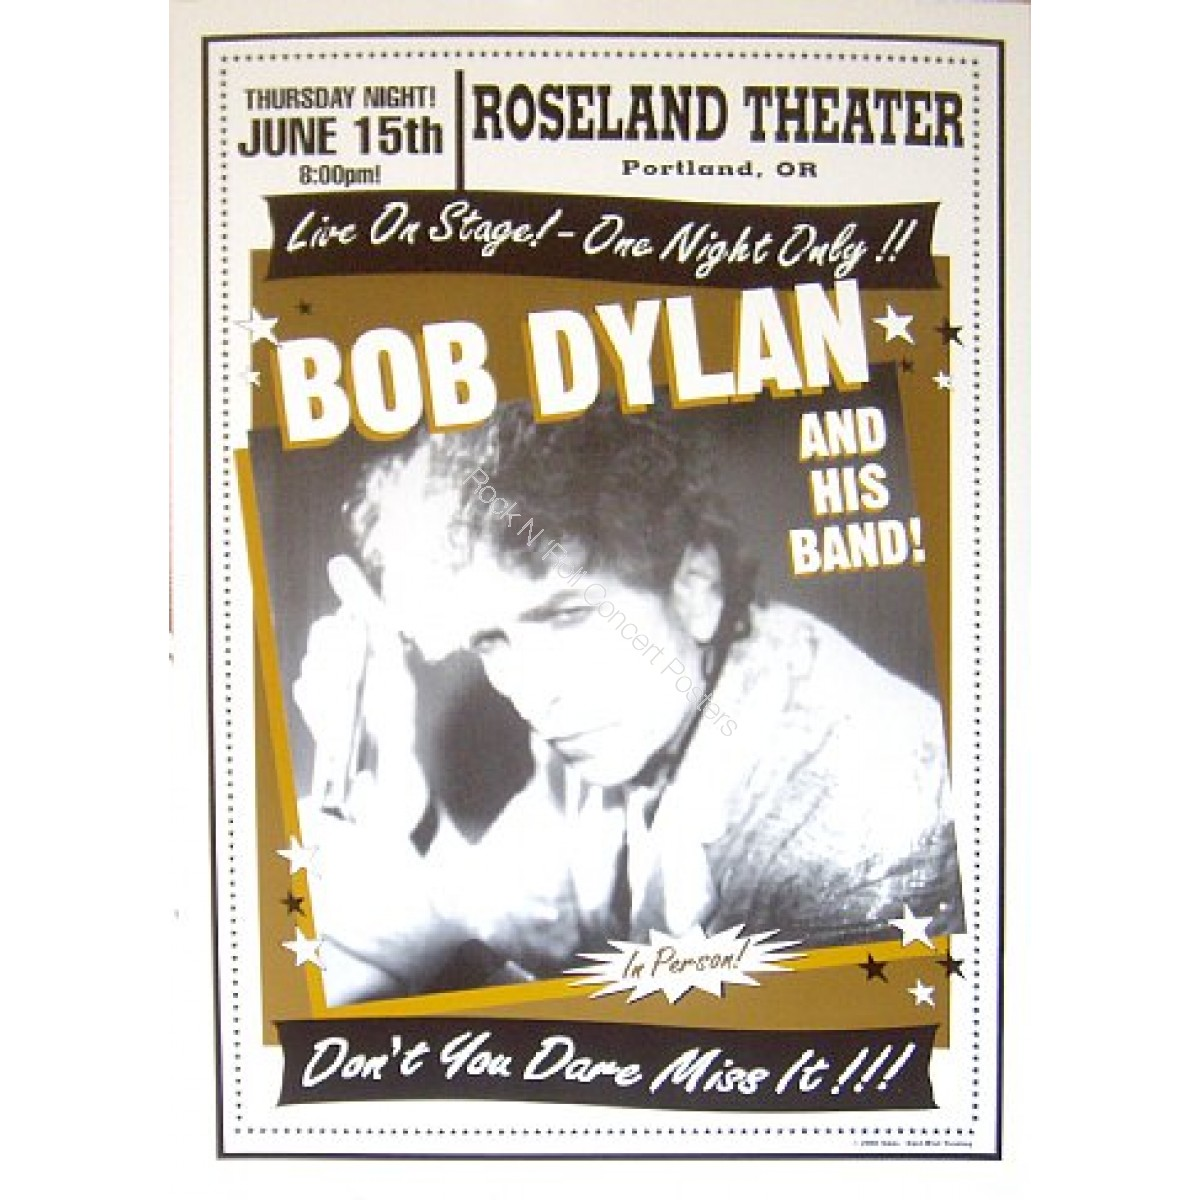 Bob Dylan @ The Roseland Theatre 6/15/00